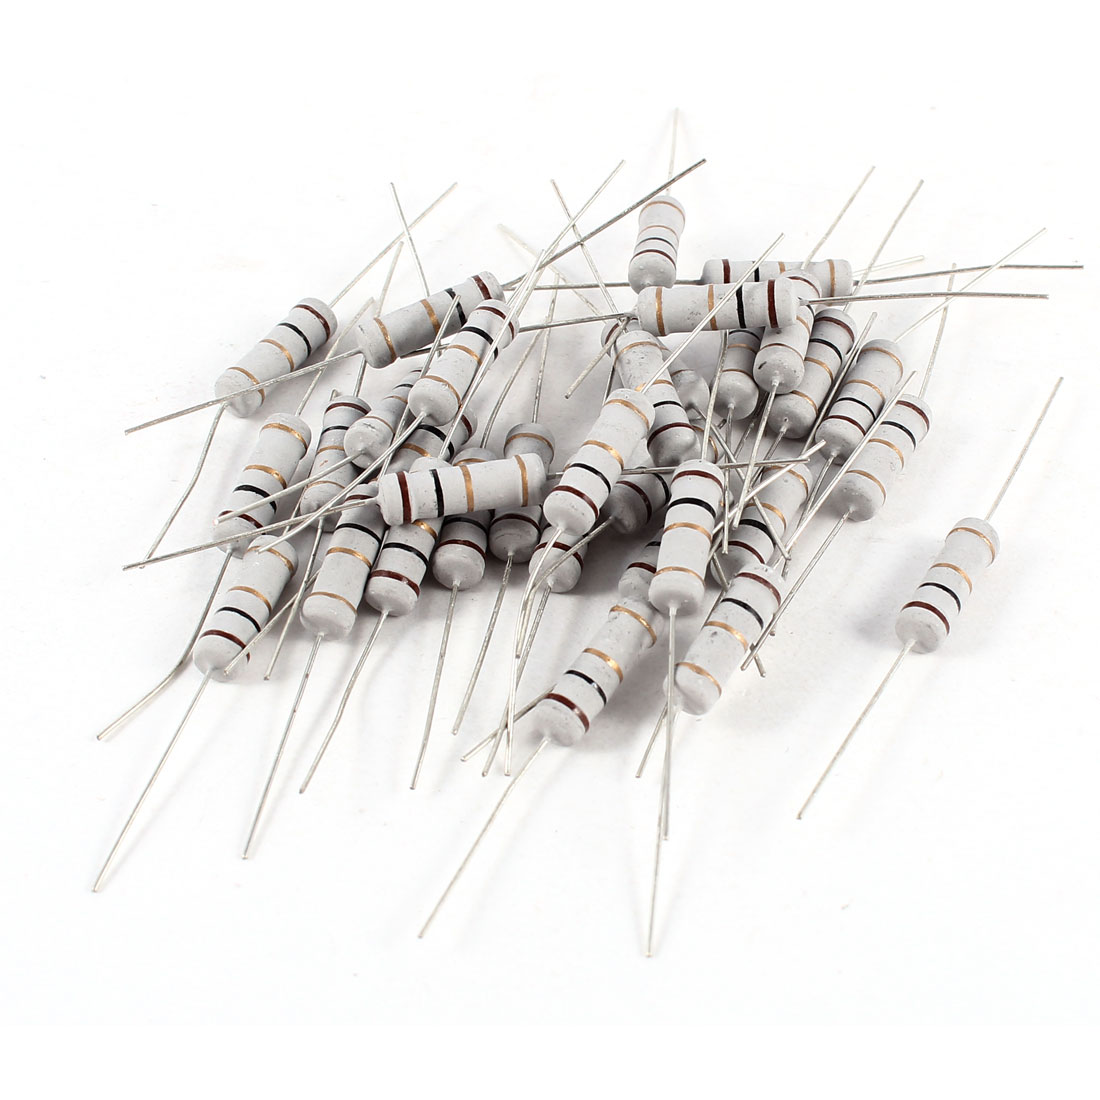 30 Pcs 2W Watt 1 Ohm 5% Tolerance Axial Lead Carbon Film Resistors